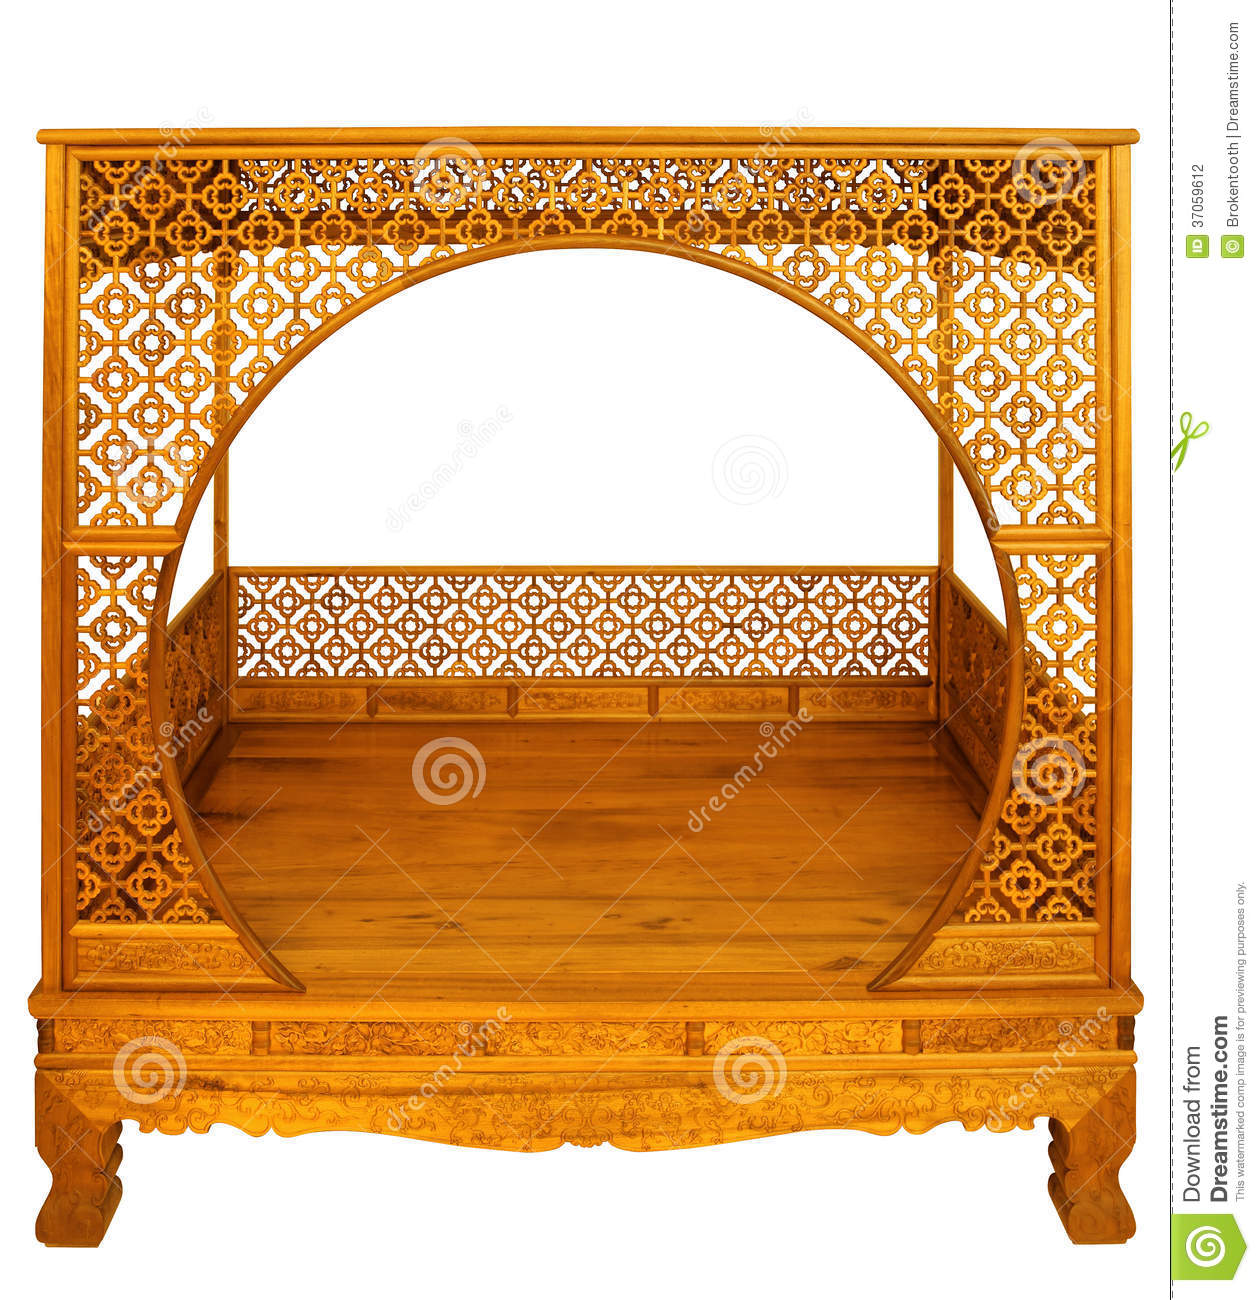 Ming style furniture of hardwood stock photo image 37059612 for Antique chinese furniture styles